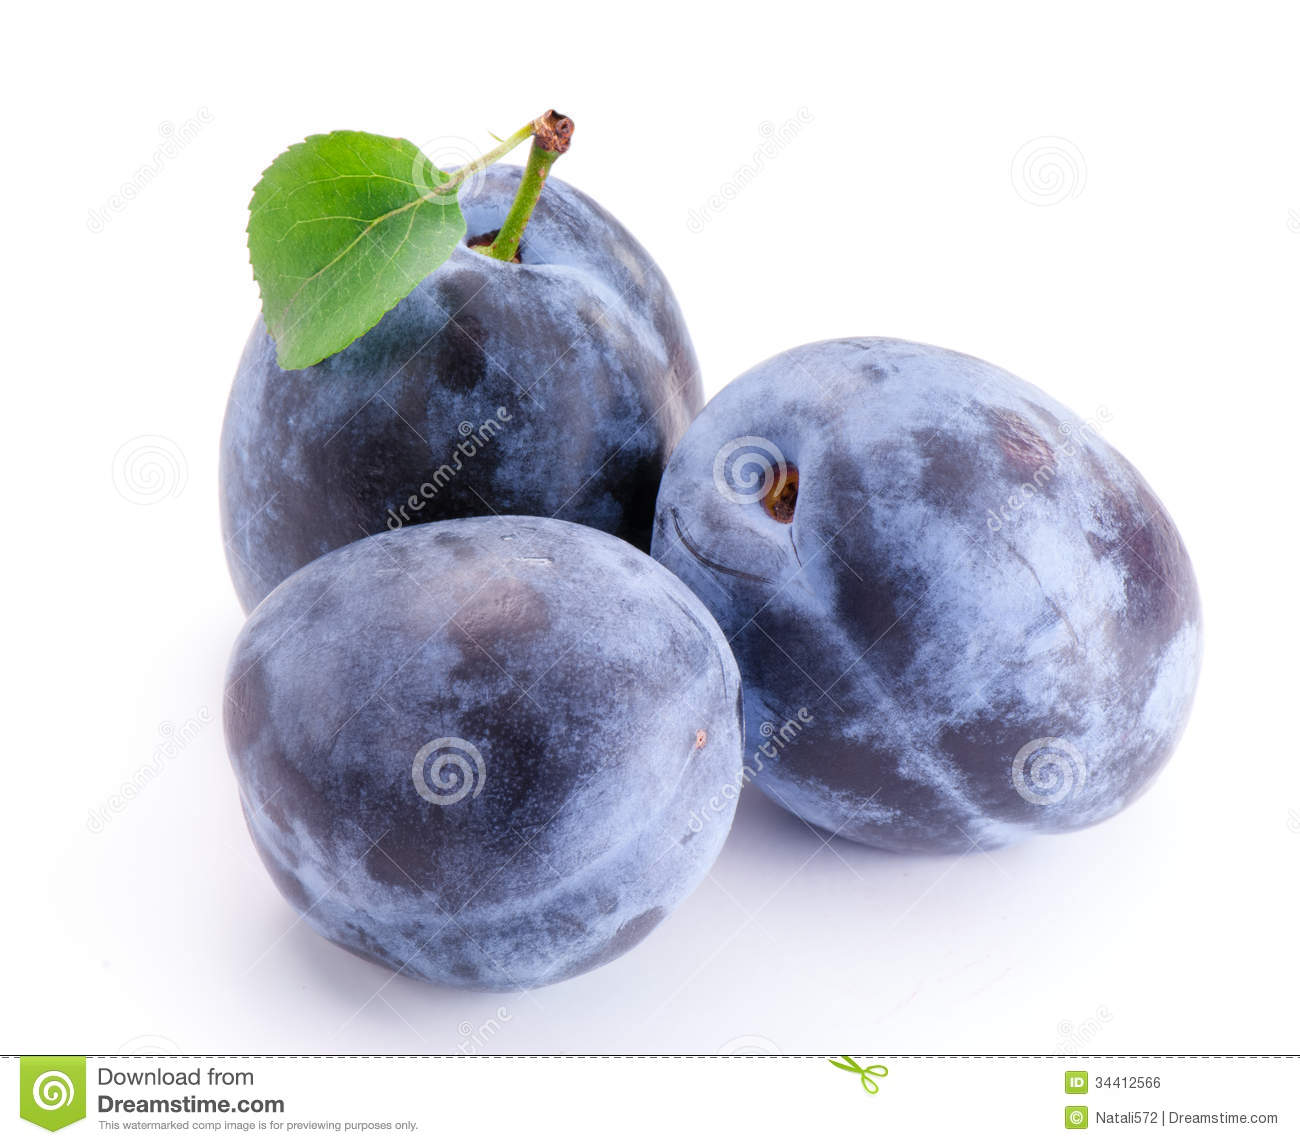 14 Best Images About Plum And Gray Decor On Pinterest: Plums With Leaf Royalty Free Stock Image